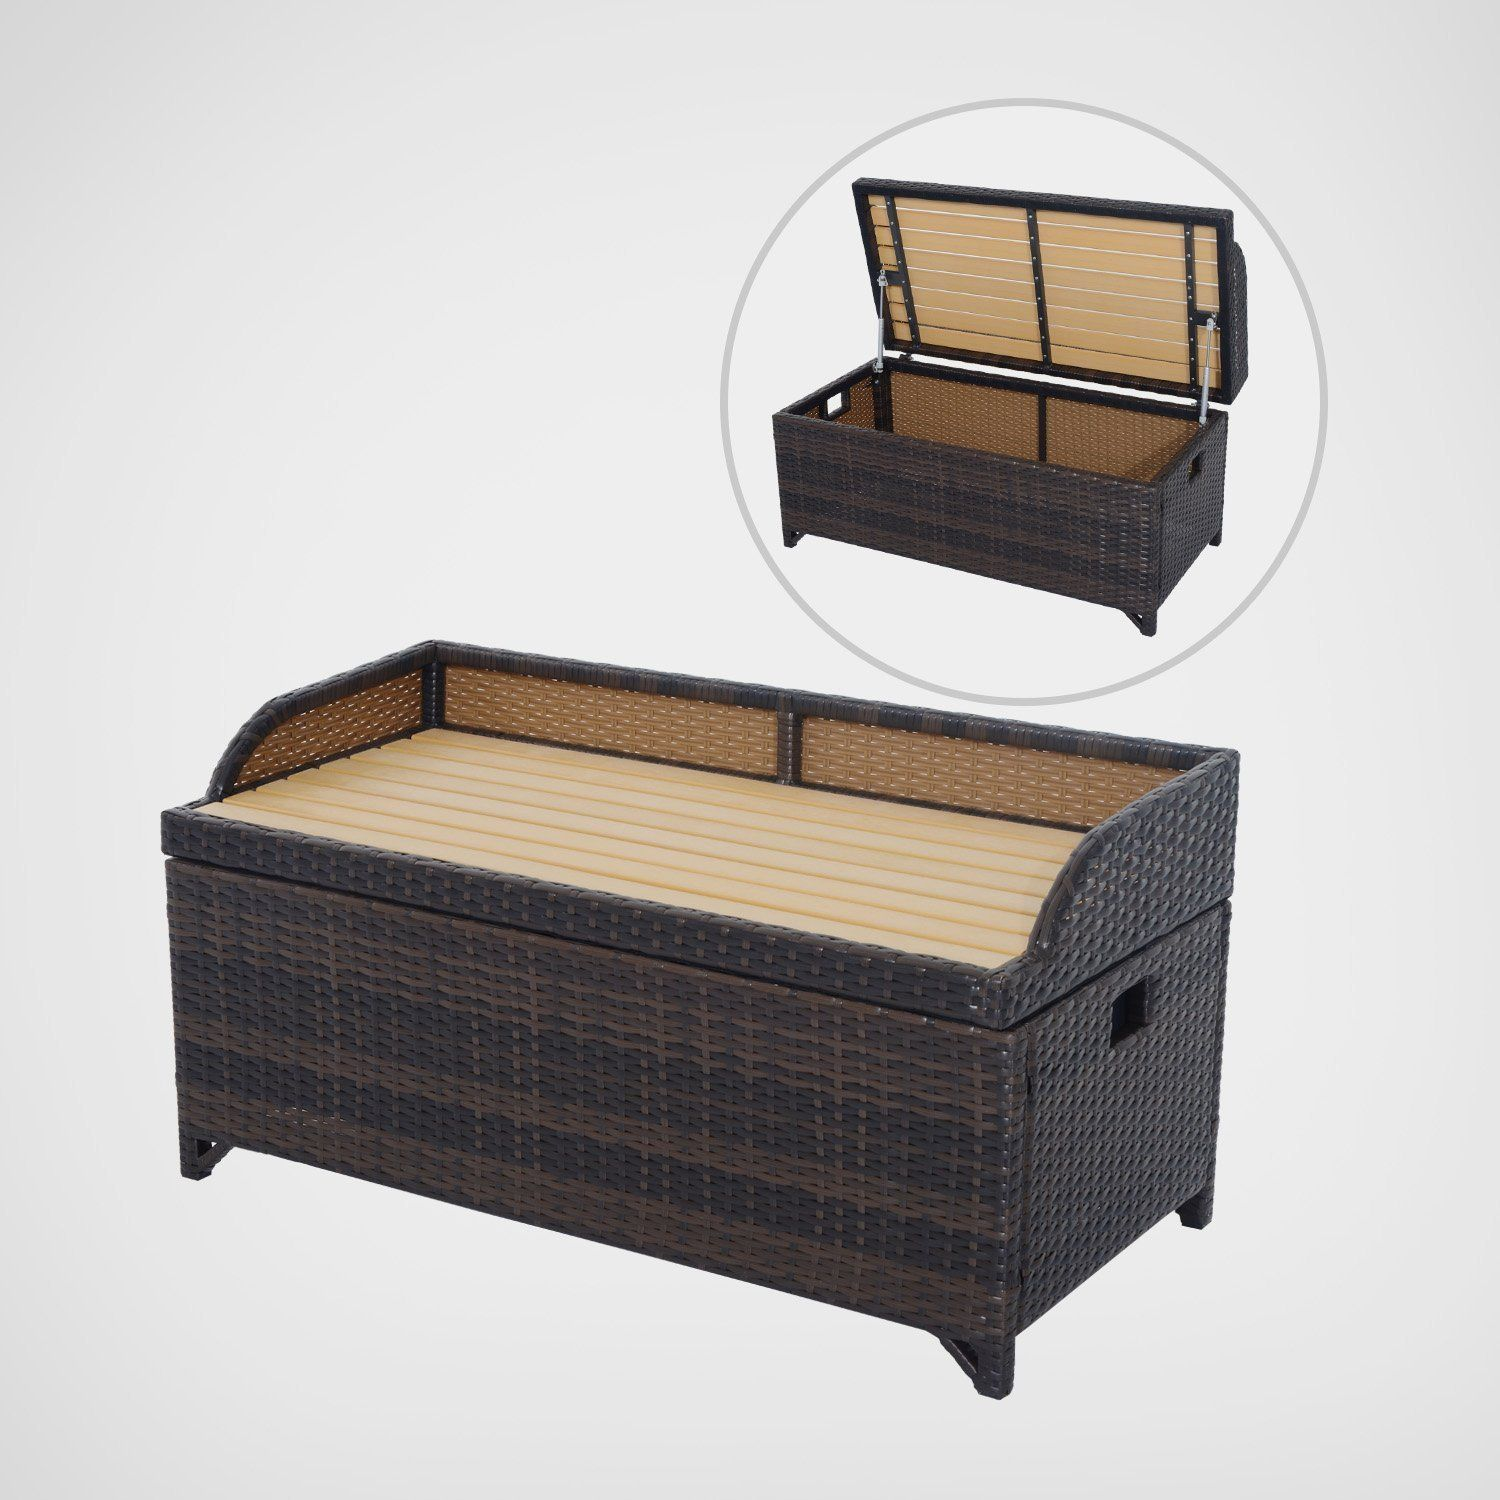 Outsunny Rattan Storage Cabinet Cushion Box Chest Bench Patio